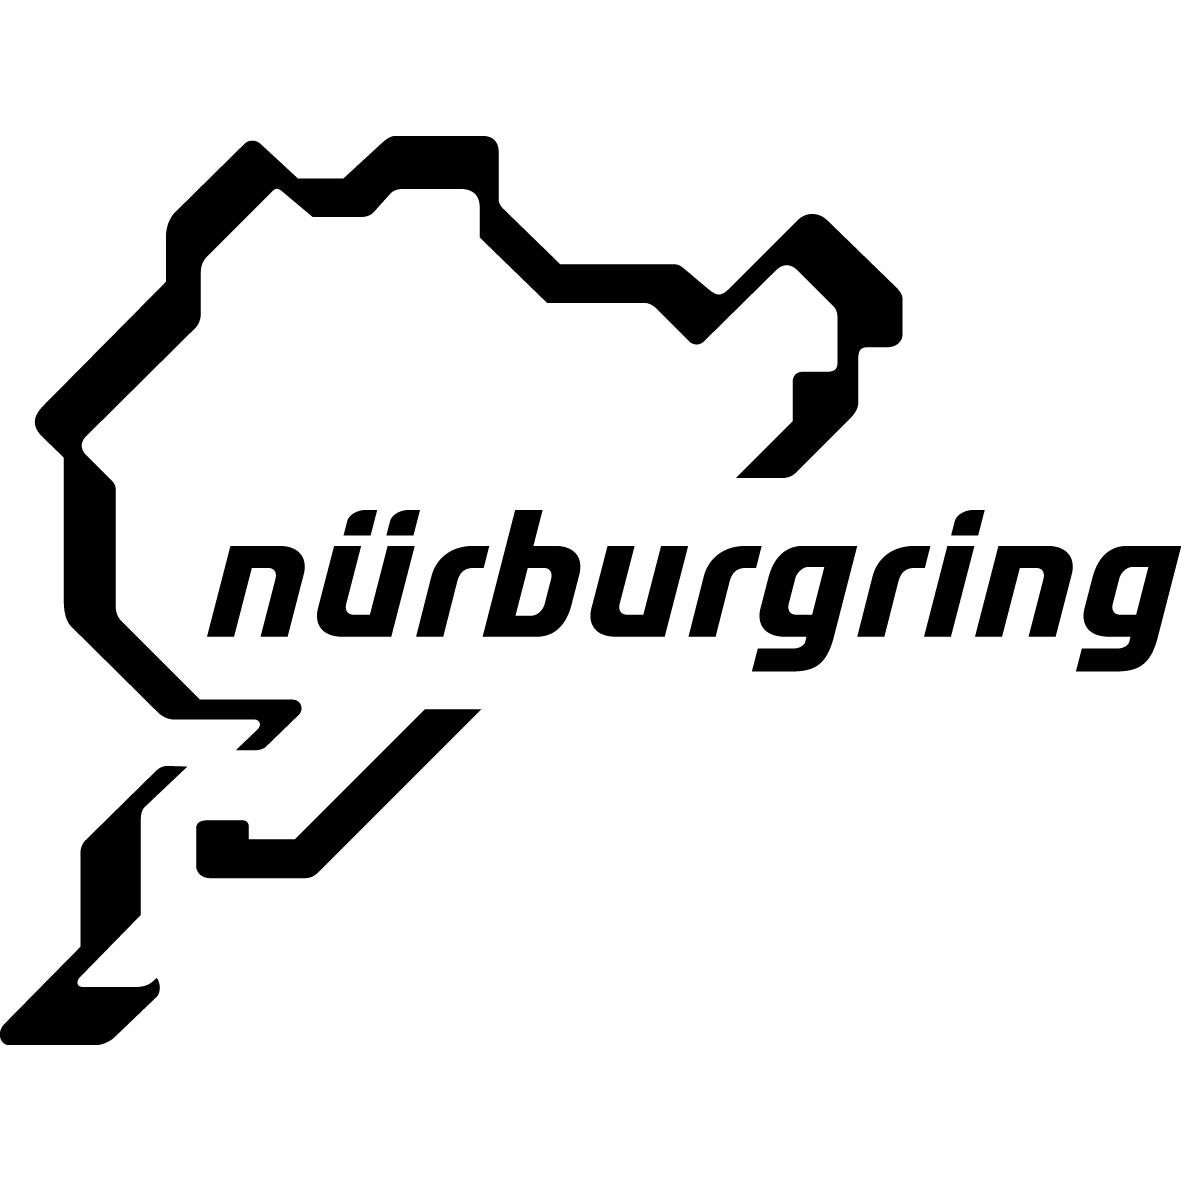 le l gendaire circuit automobile du n rburgring achet par un russe. Black Bedroom Furniture Sets. Home Design Ideas